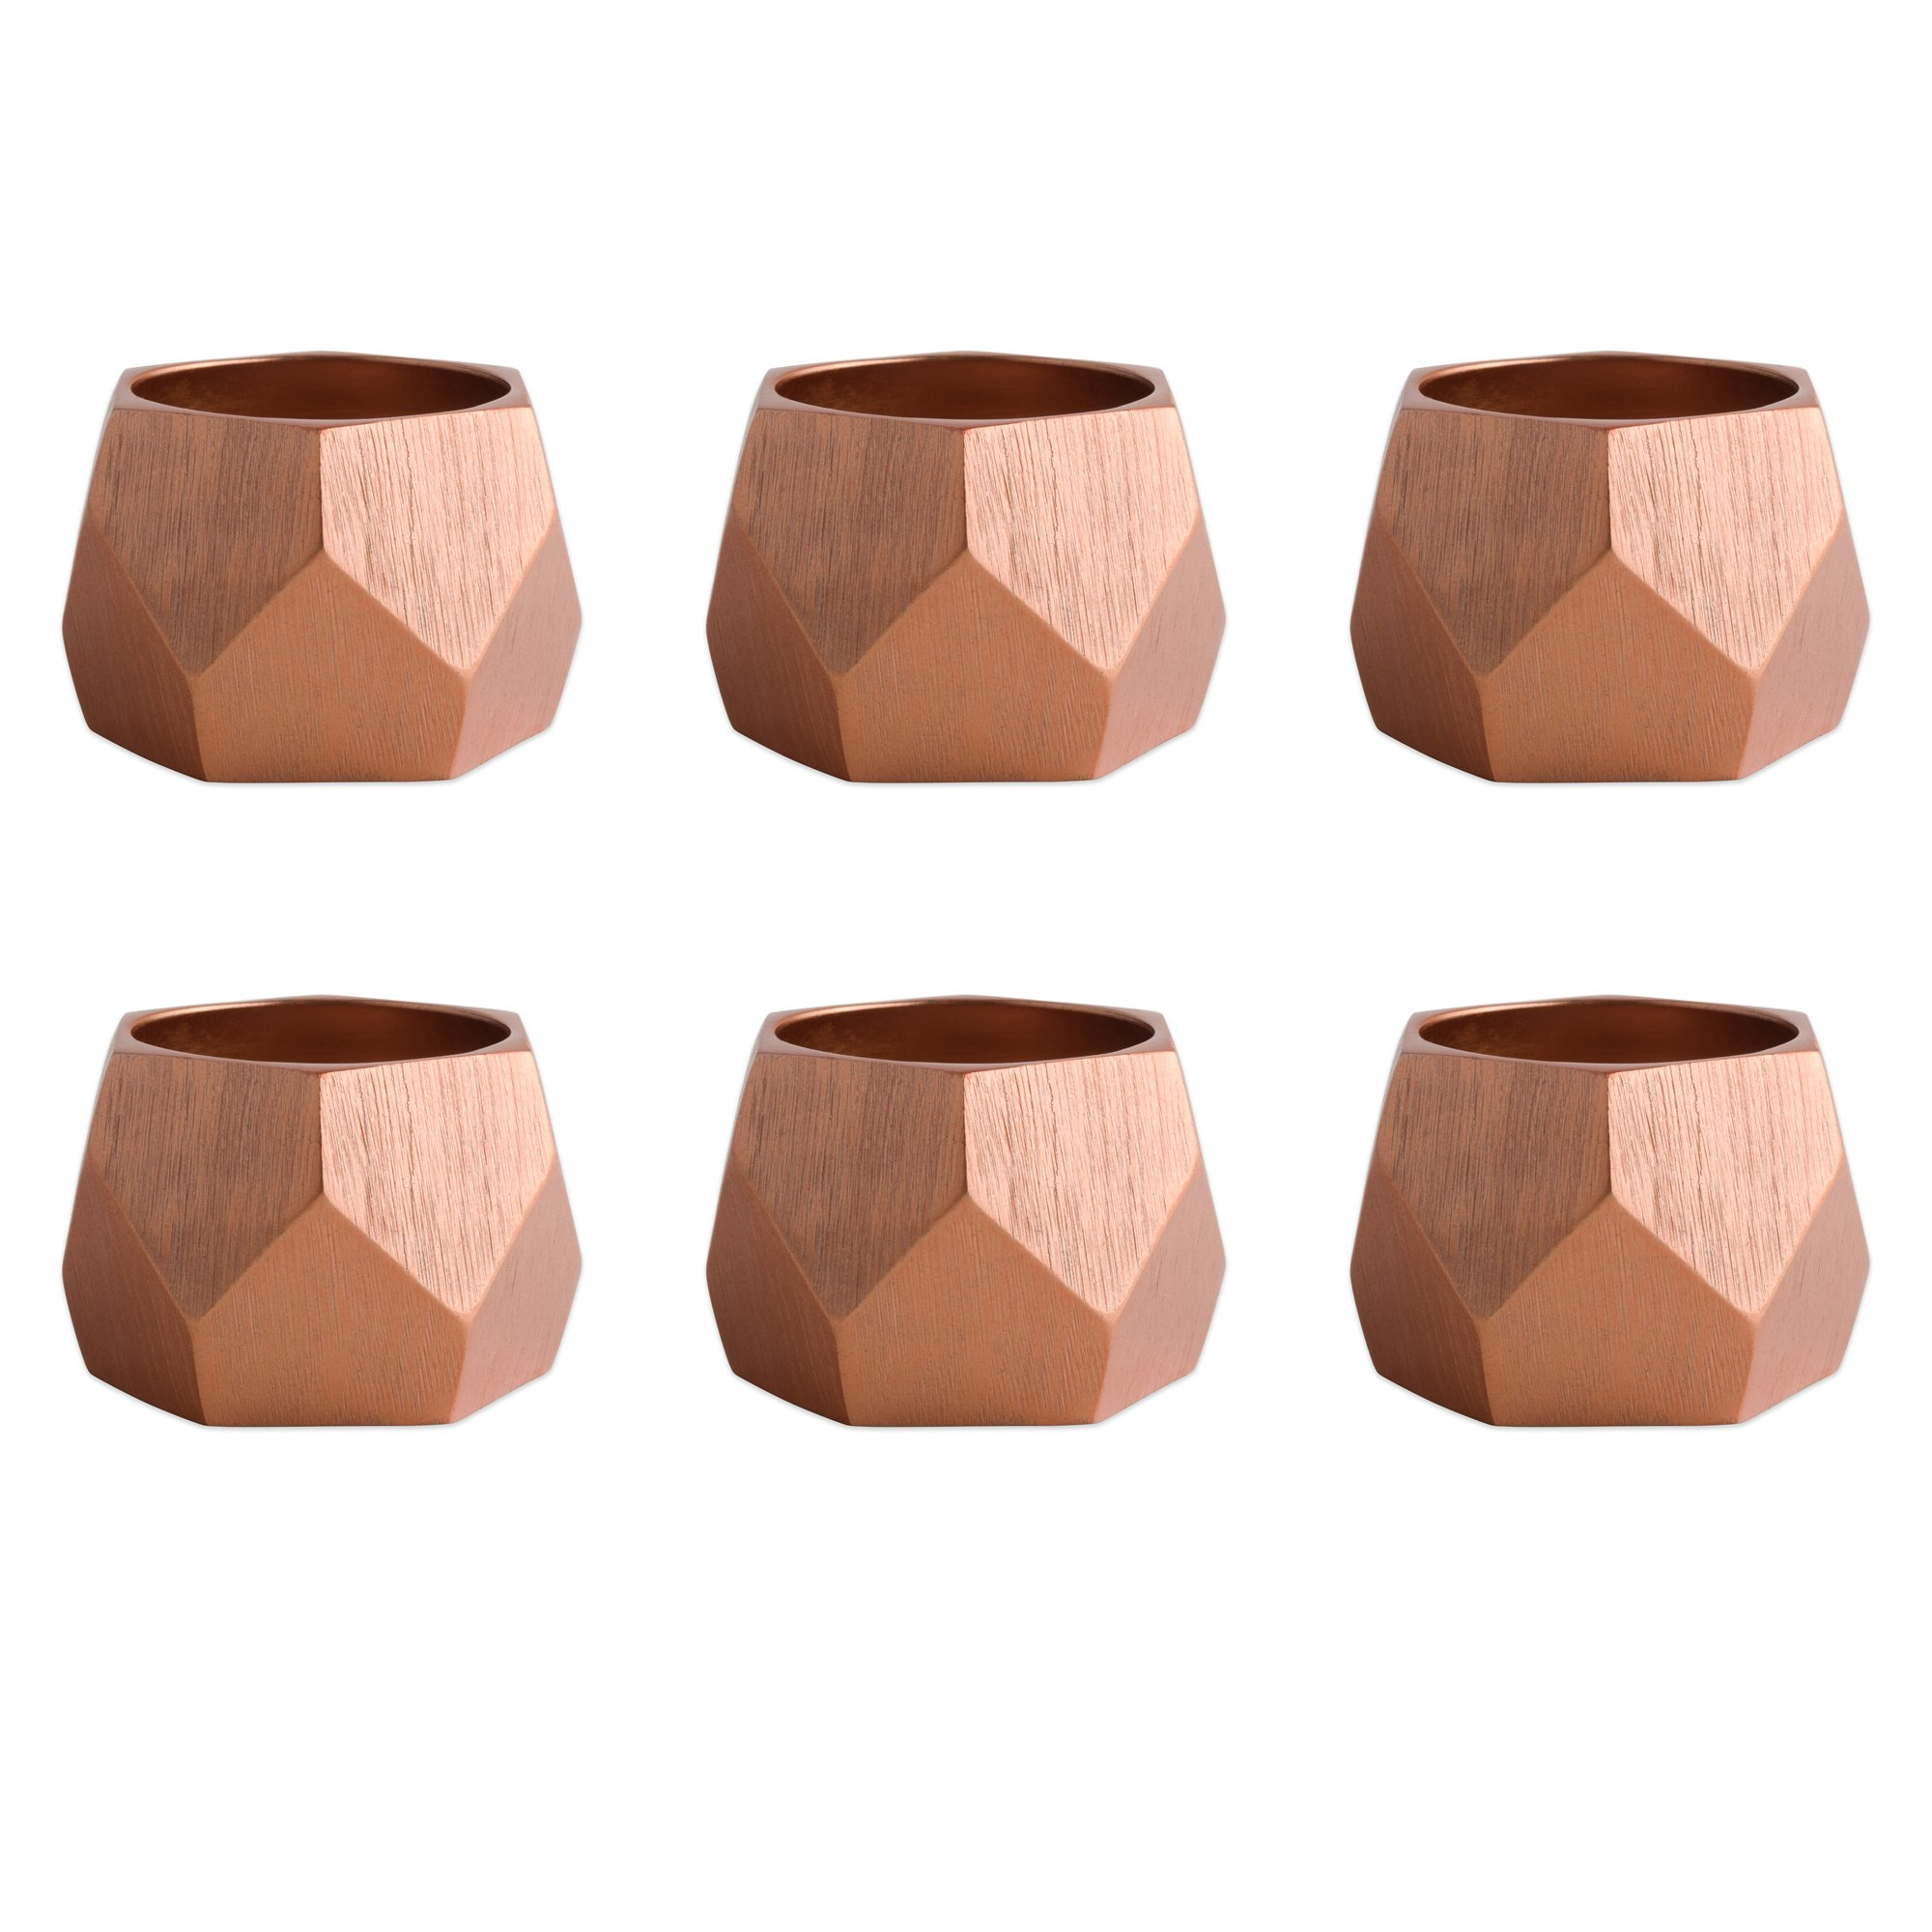 DII Contemporary Chic Napkin Rings for Dinner Parties, Weddings Receptions, Family Gatherings, or Everyday Use, Set Your Table With Style - Copper Geometric Triangle Band, Set of 6